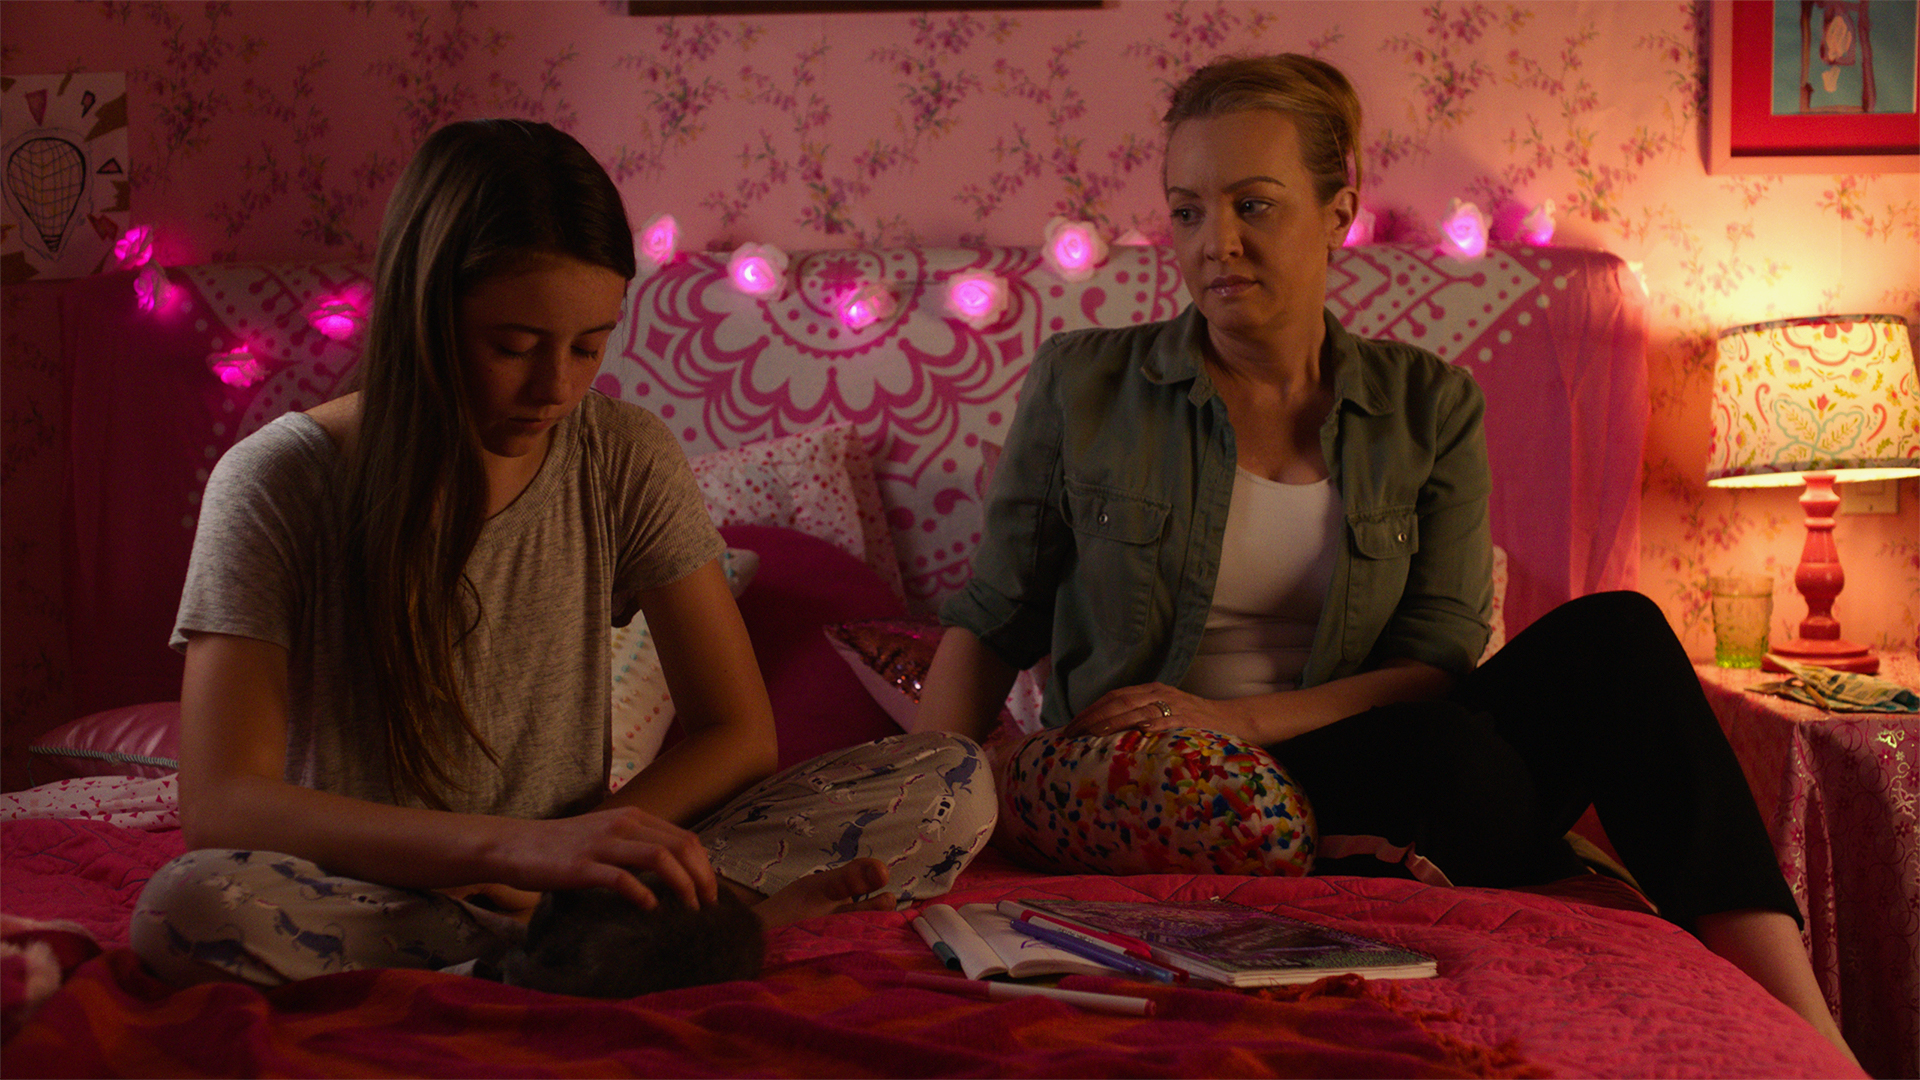 """Wendi McLendon-Covey, right, plays Cathy, an obsessive-compulsive mom, here talking to her daughter Tara (Kate Alberts), in Debra Eisenstadt's """"Imaginary Order,"""" an official selection in the U.S. Dramatic Competition of the 2019 Sundance Film Festival. (Photo courtesy Sundance Institute)"""